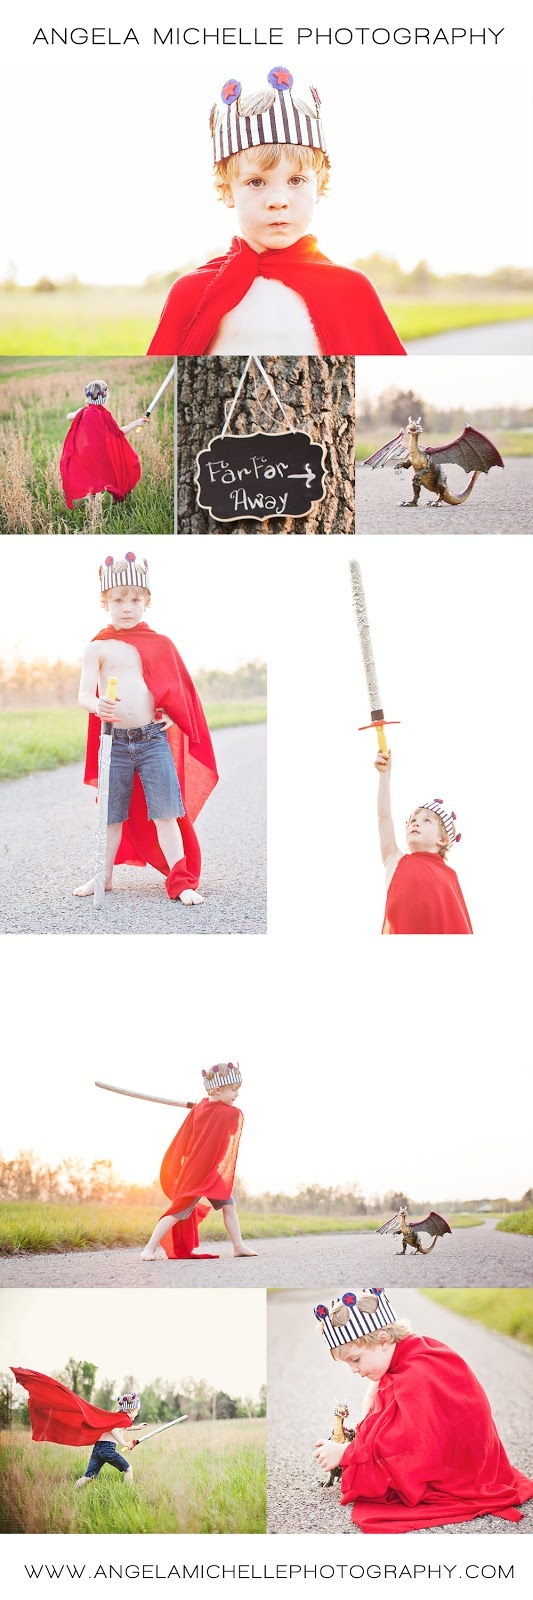 Little boy photo session crown prince Angela Michelle Photography